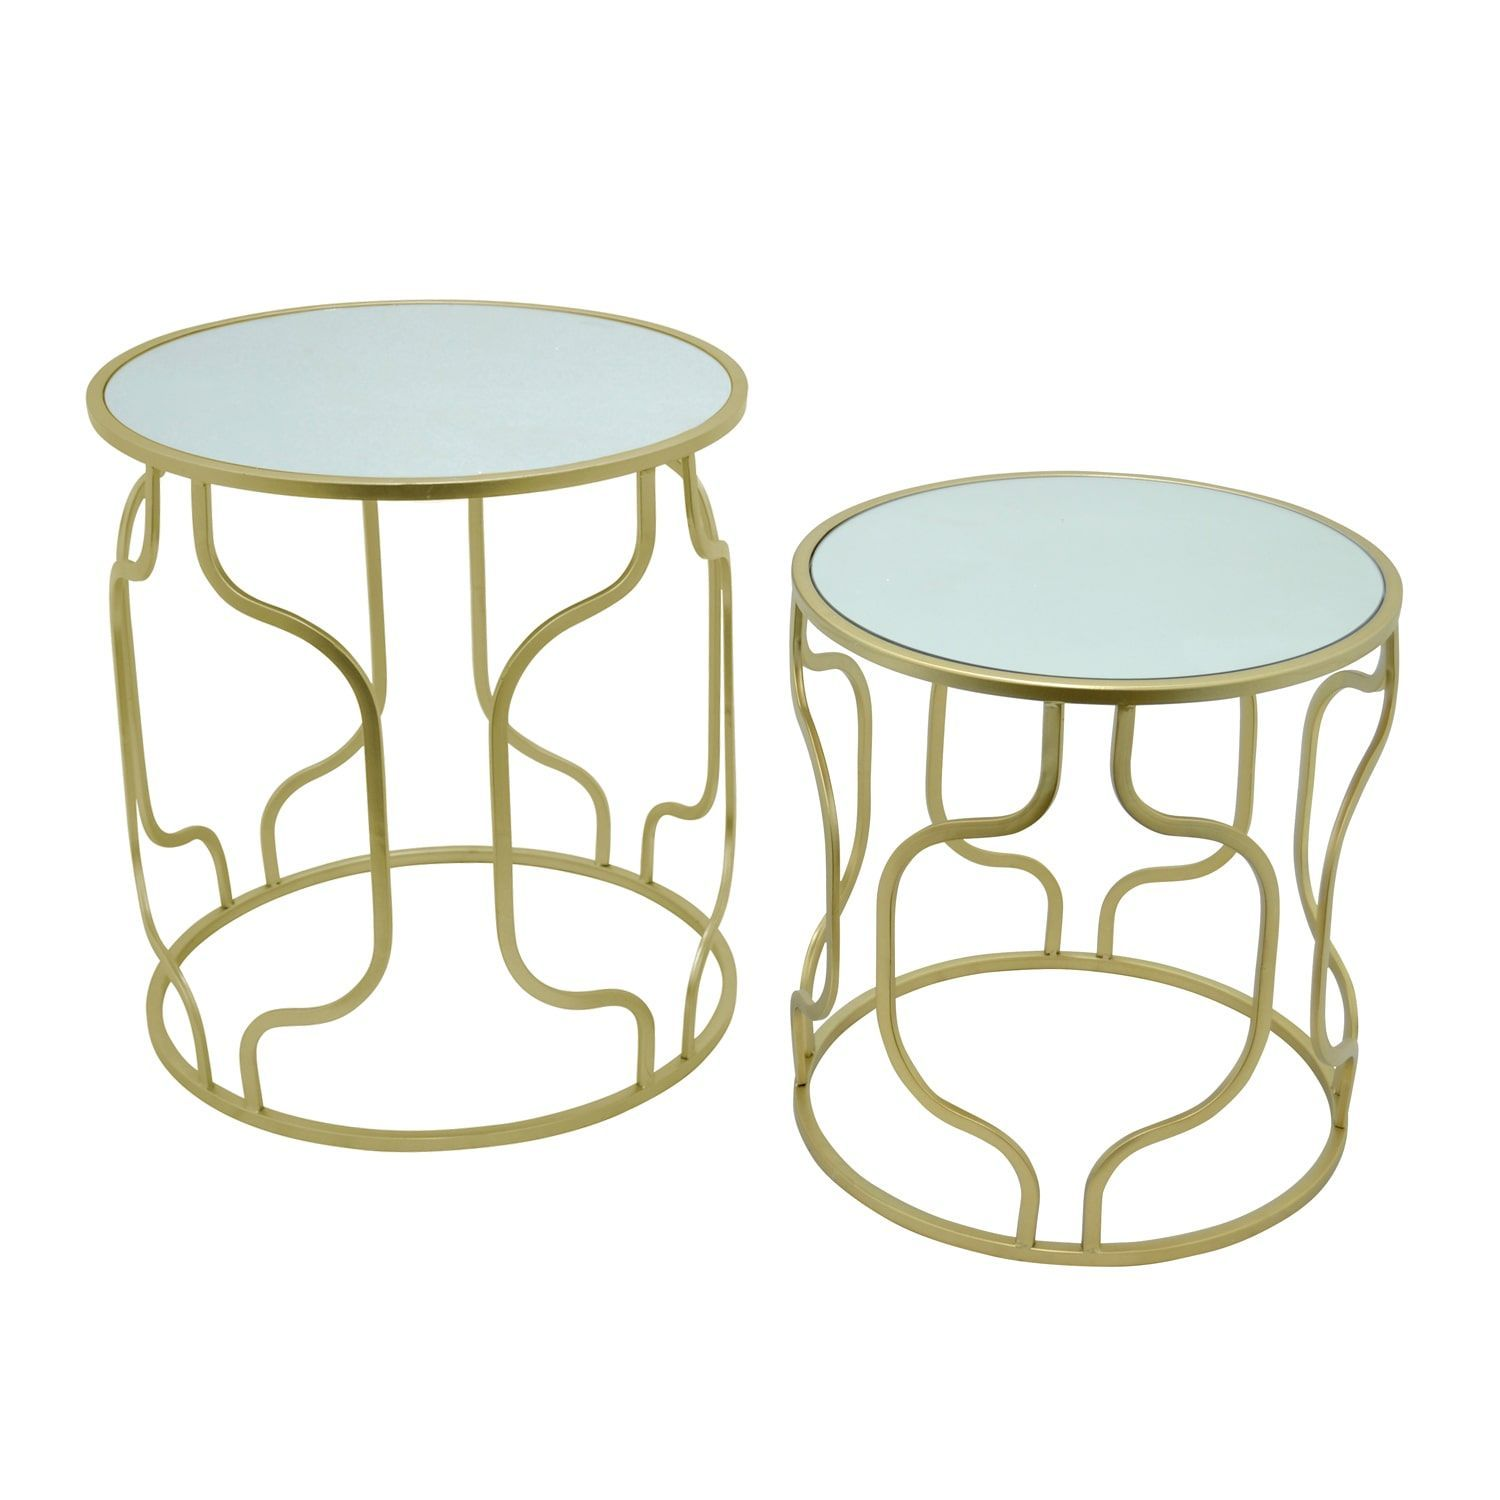 three hands goldtone metal mirror accent table set gold and pottery barn drum small bedside blue white ginger jar lamp kitchen with wine rack tablecloth for inch round entryway